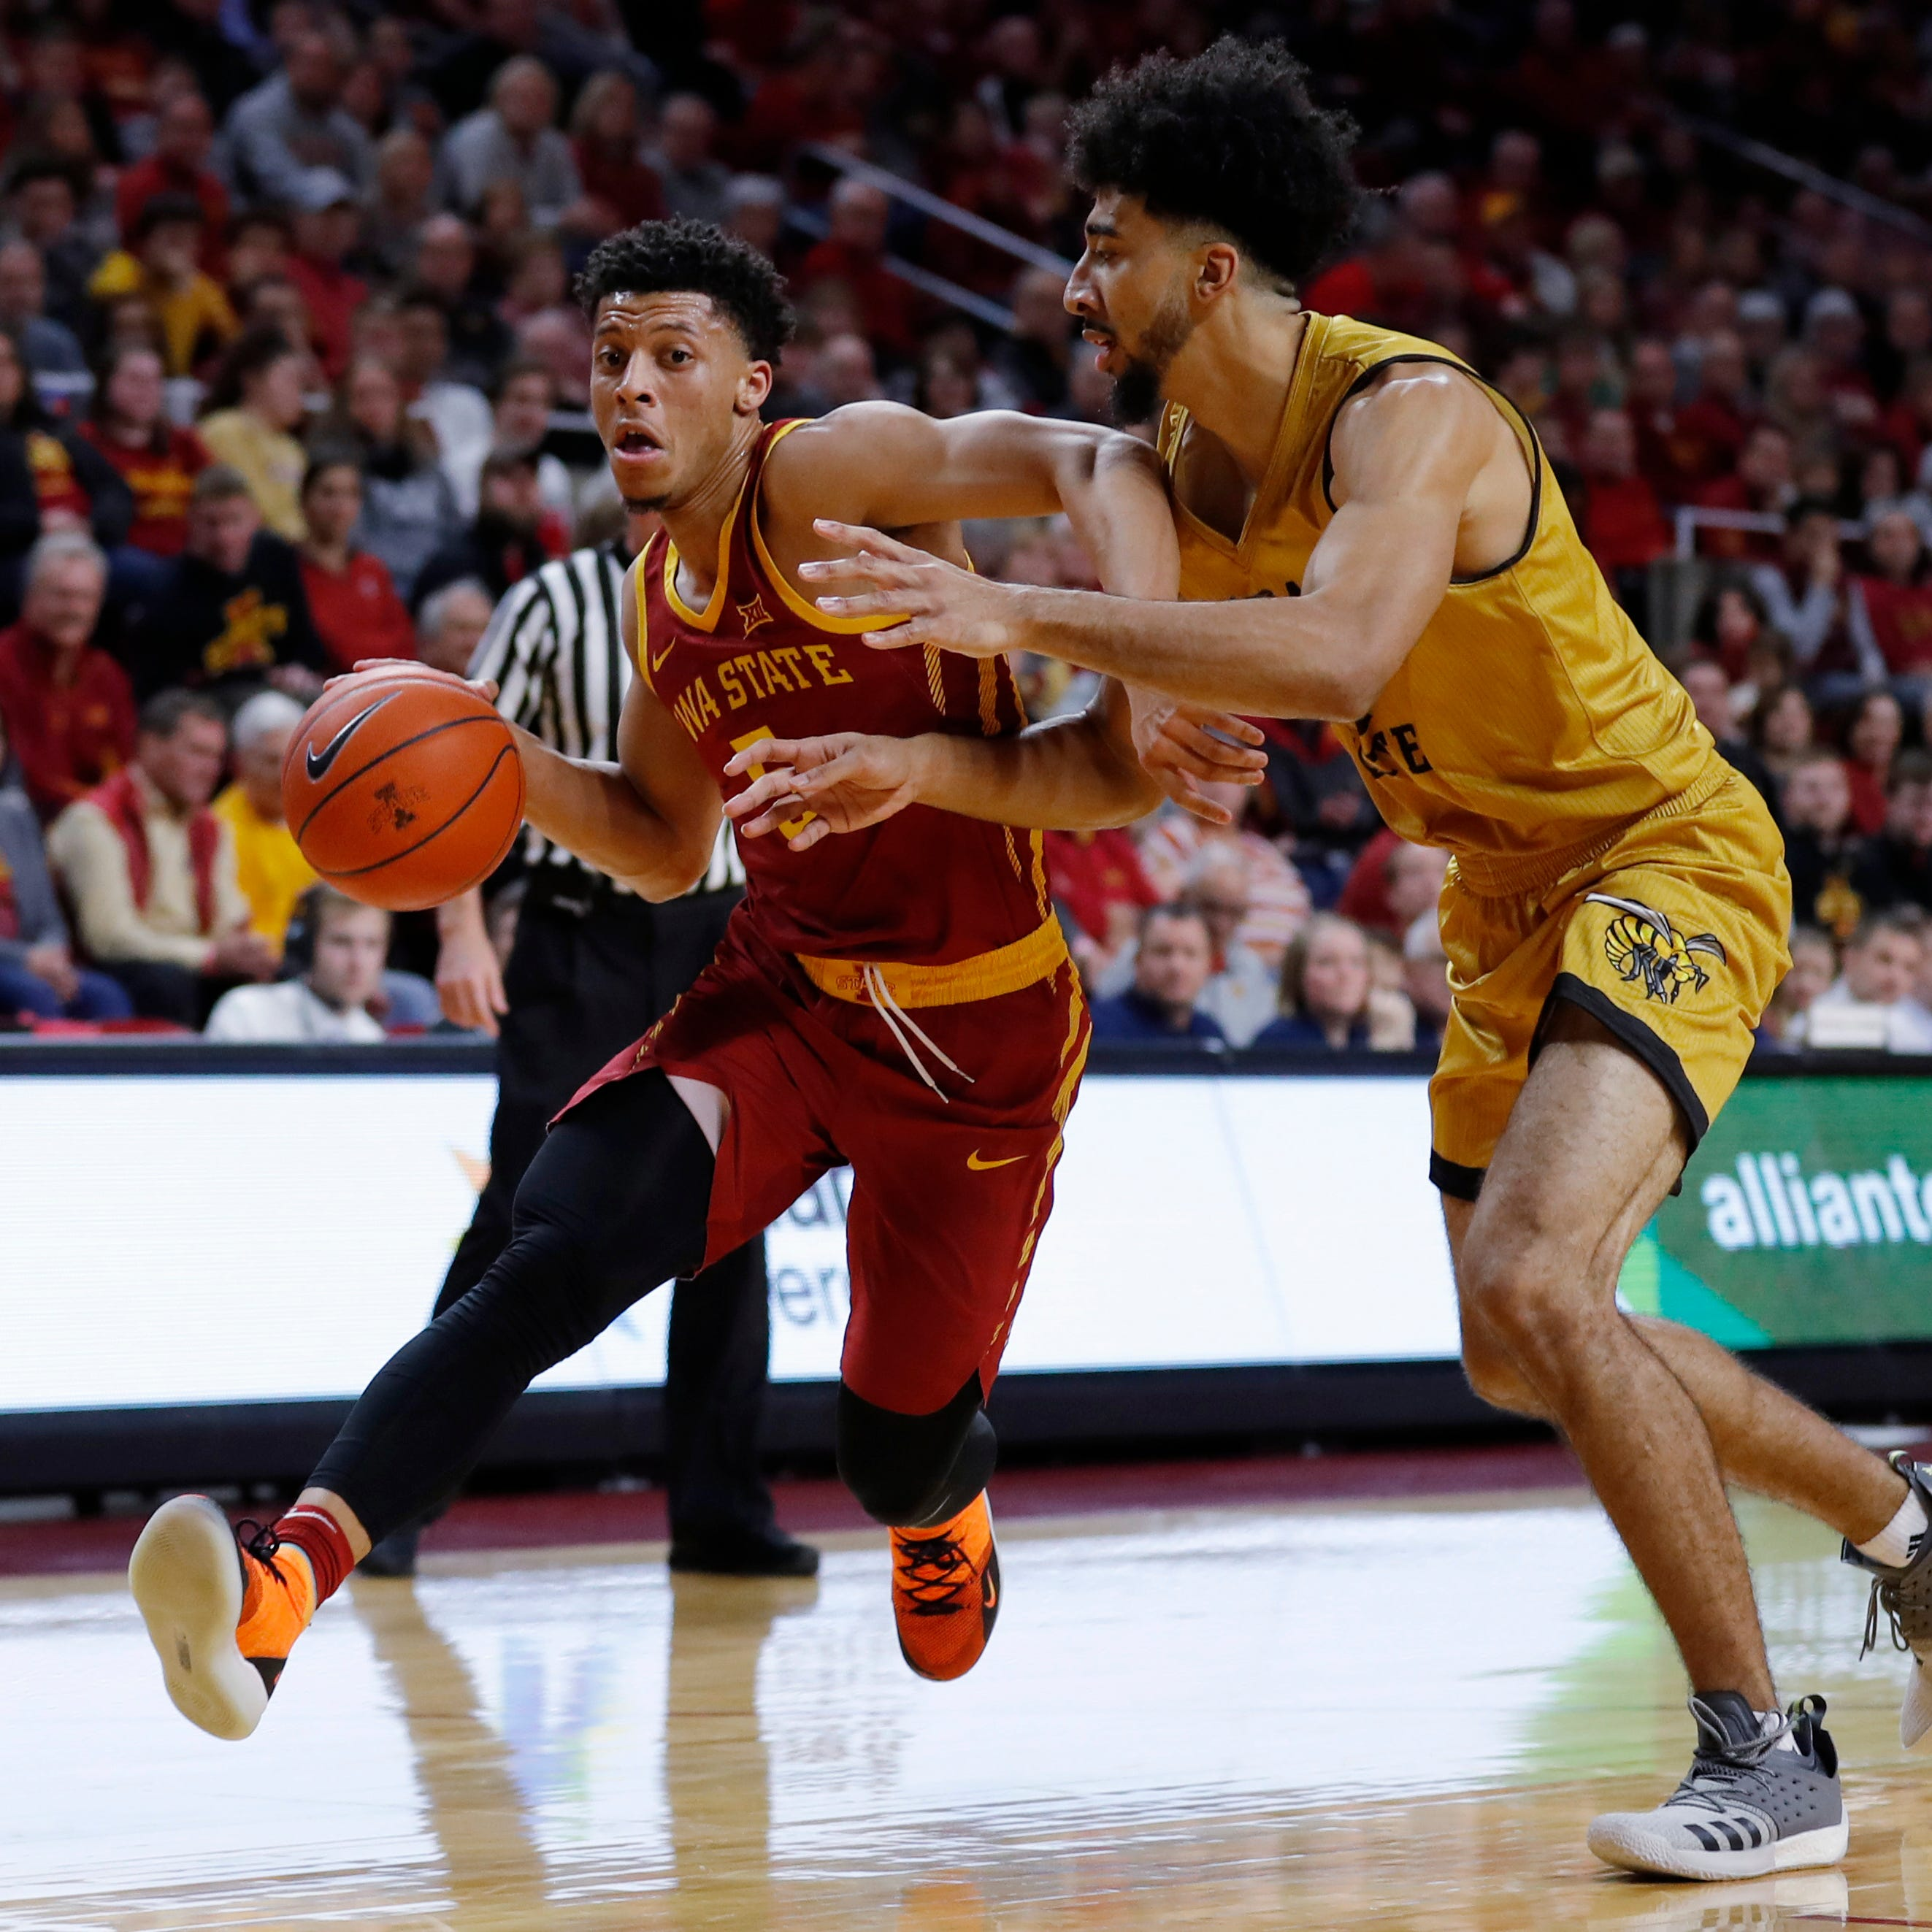 Peterson: Wigginton is anxious to get his 'feel back in a real-game setting'